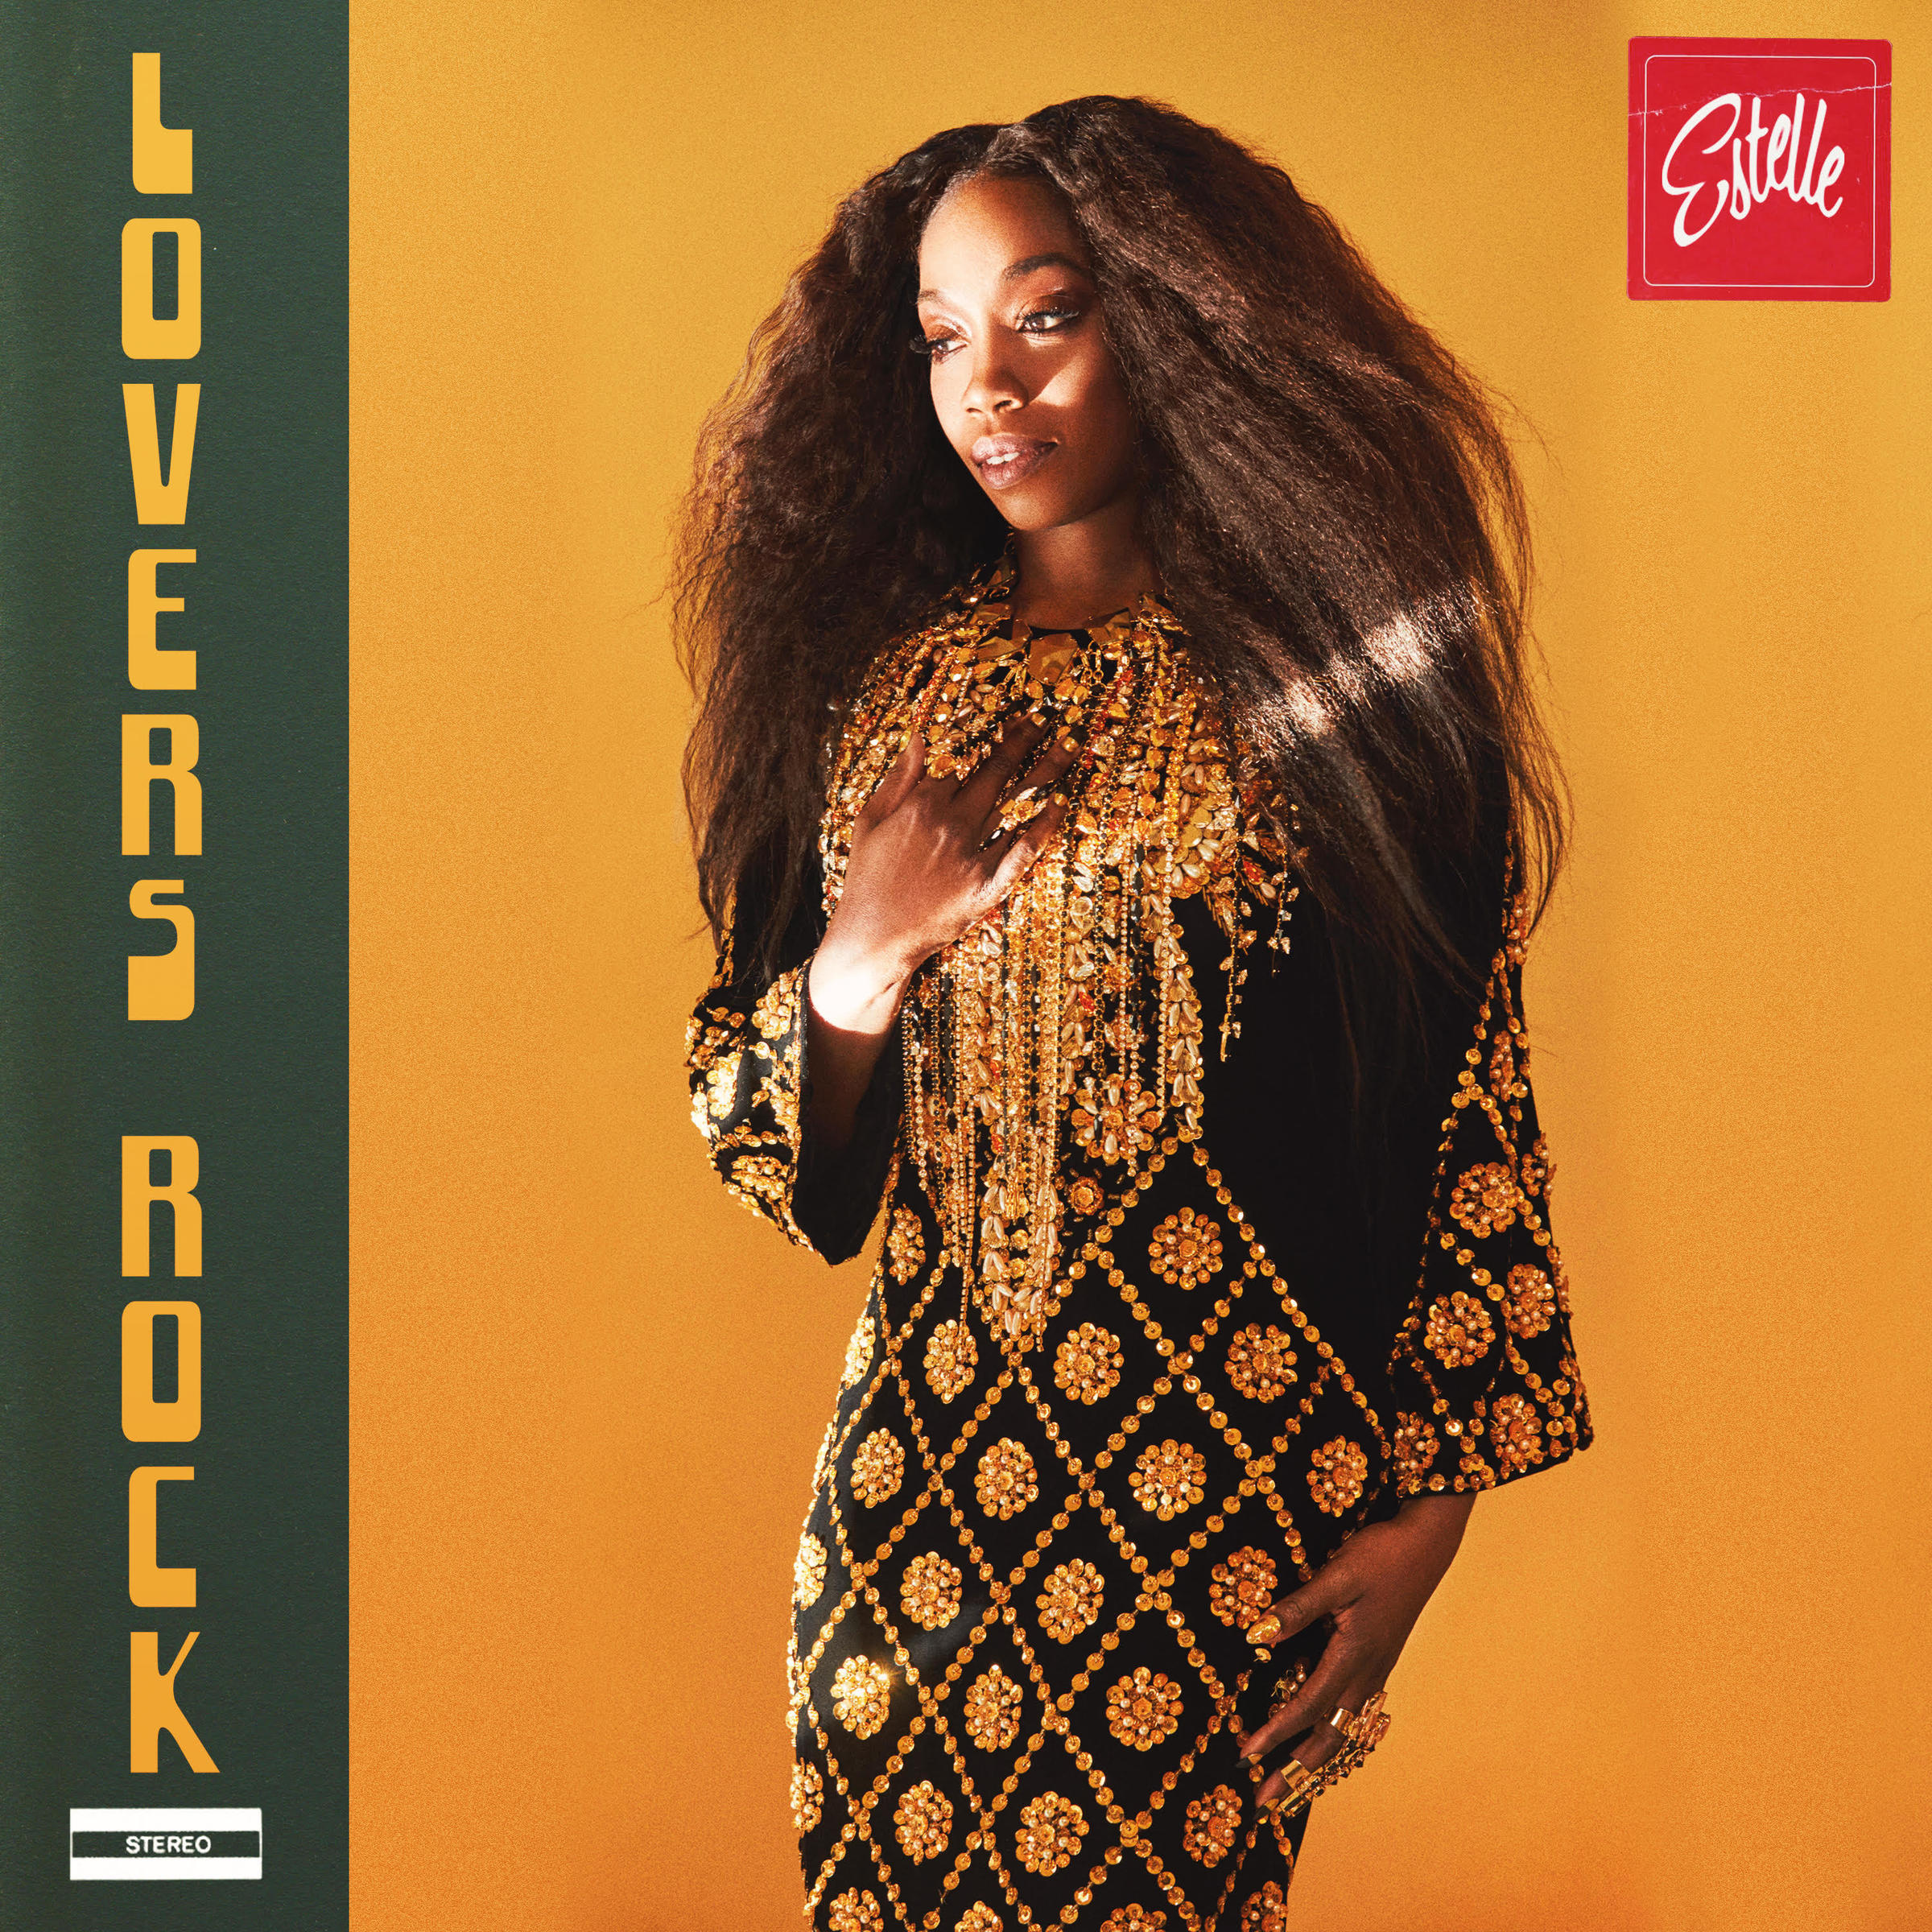 Estelle Wants You To Know You Deserve Love | WPRL